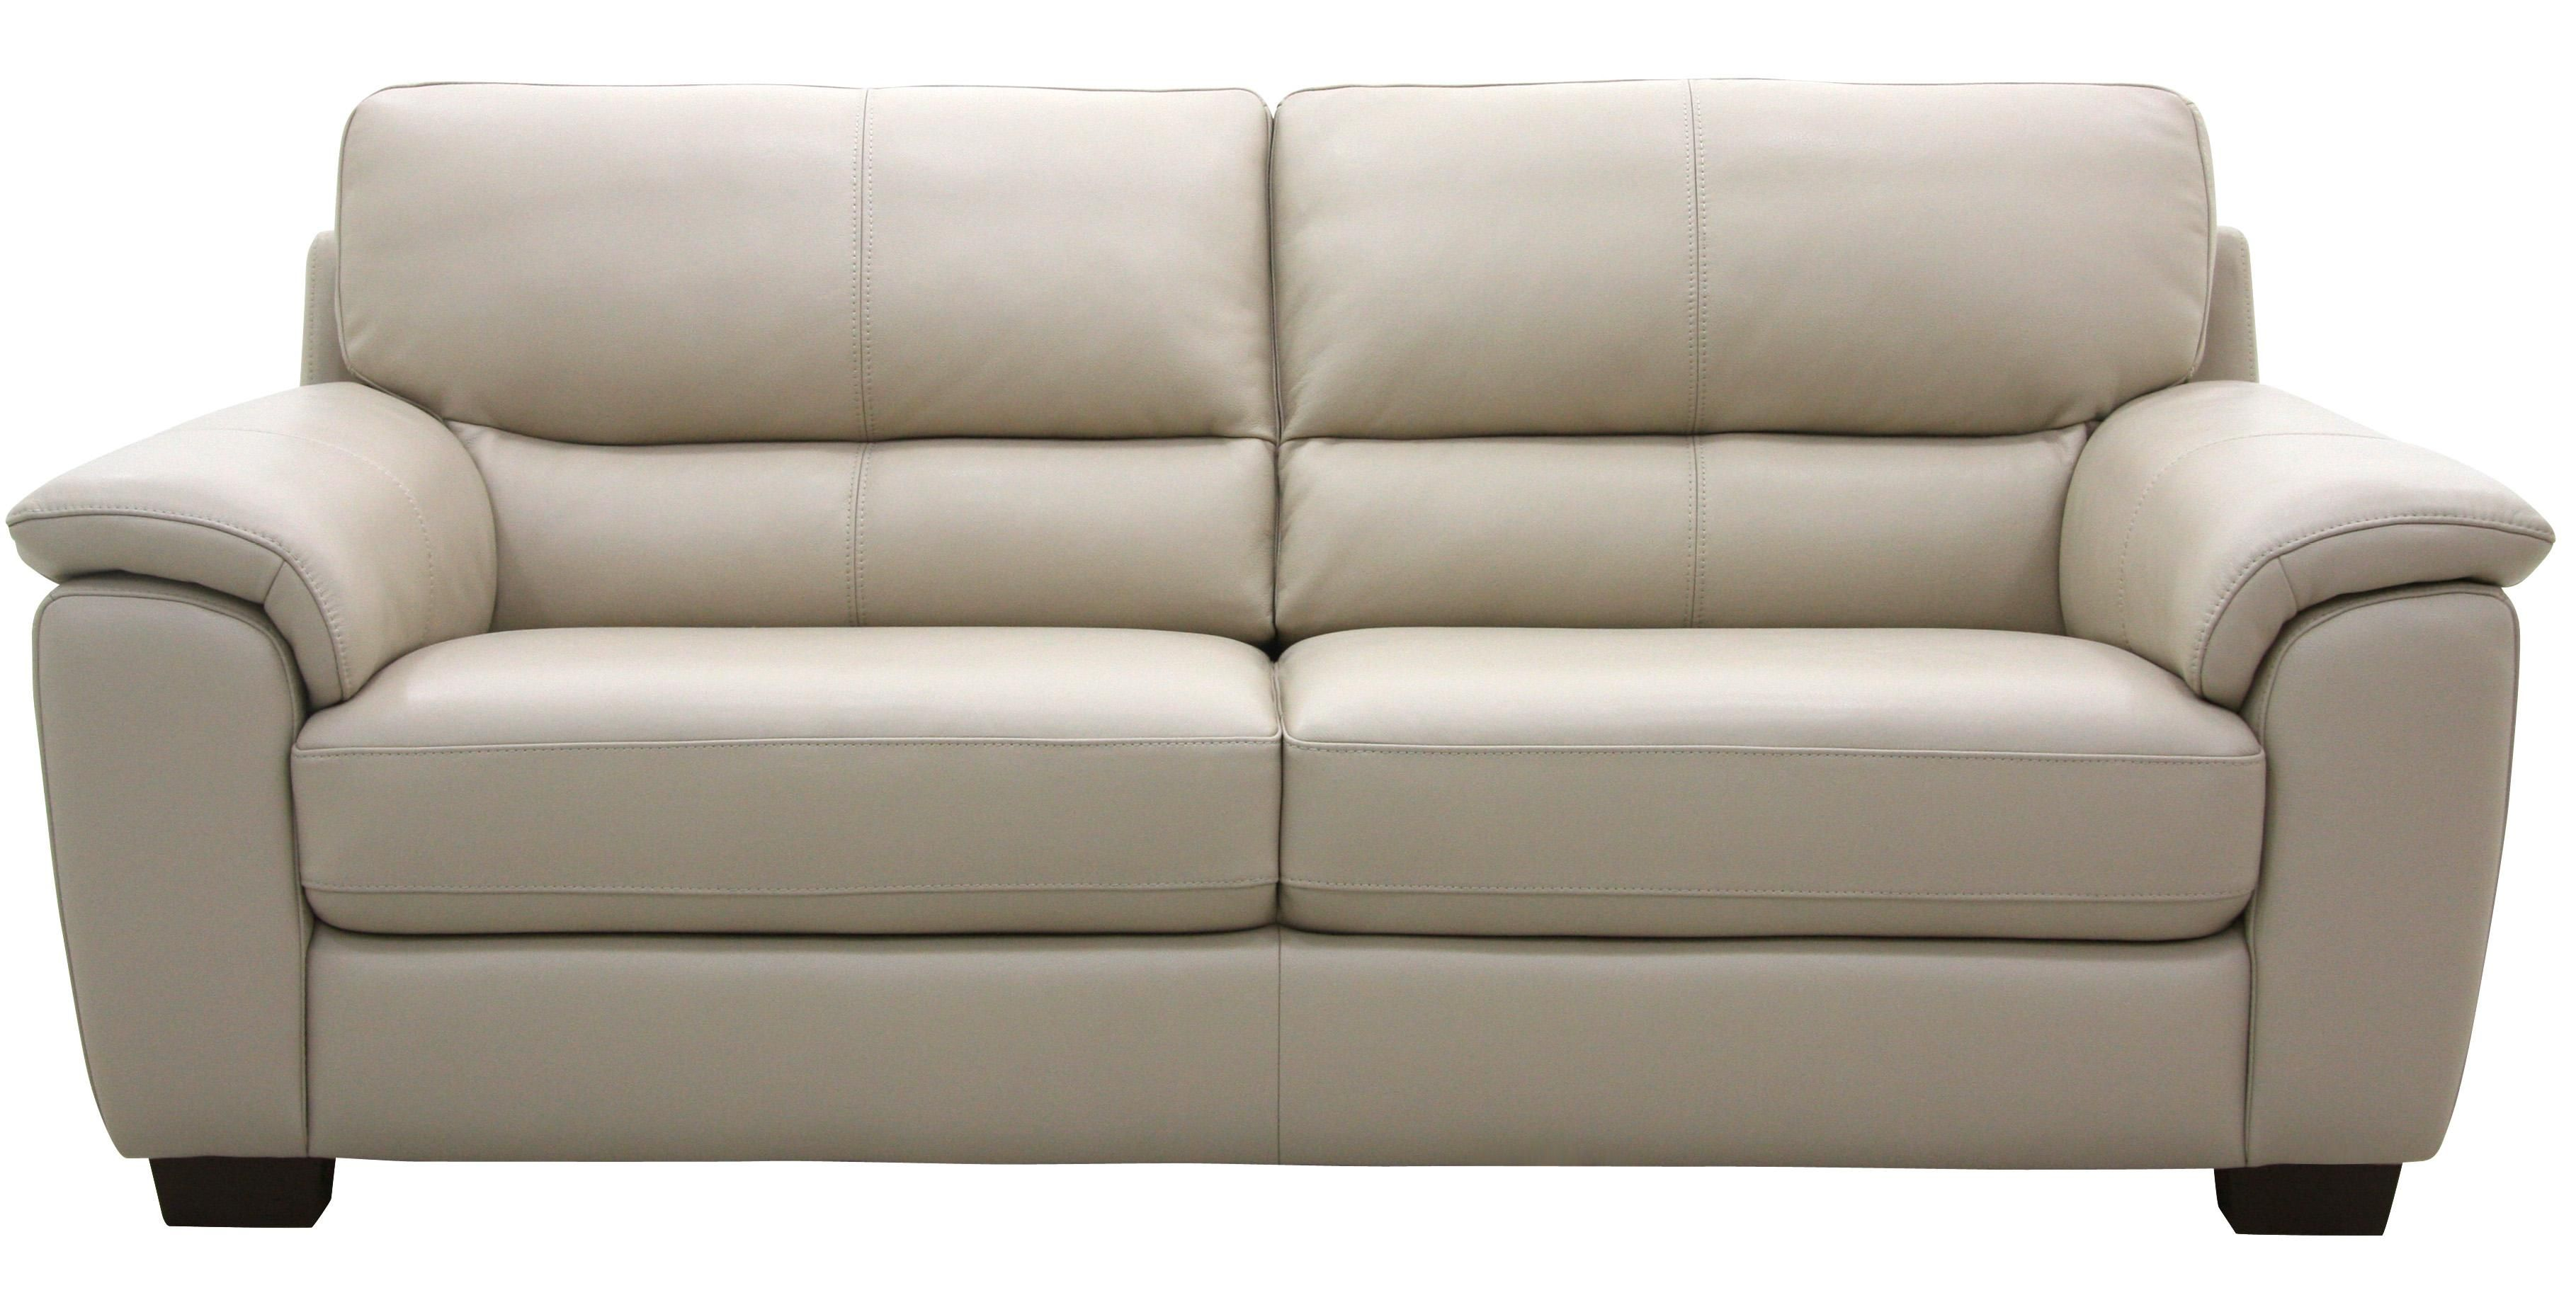 Htl Sofa Htl Furniture 9170 Leather Collection Featuring